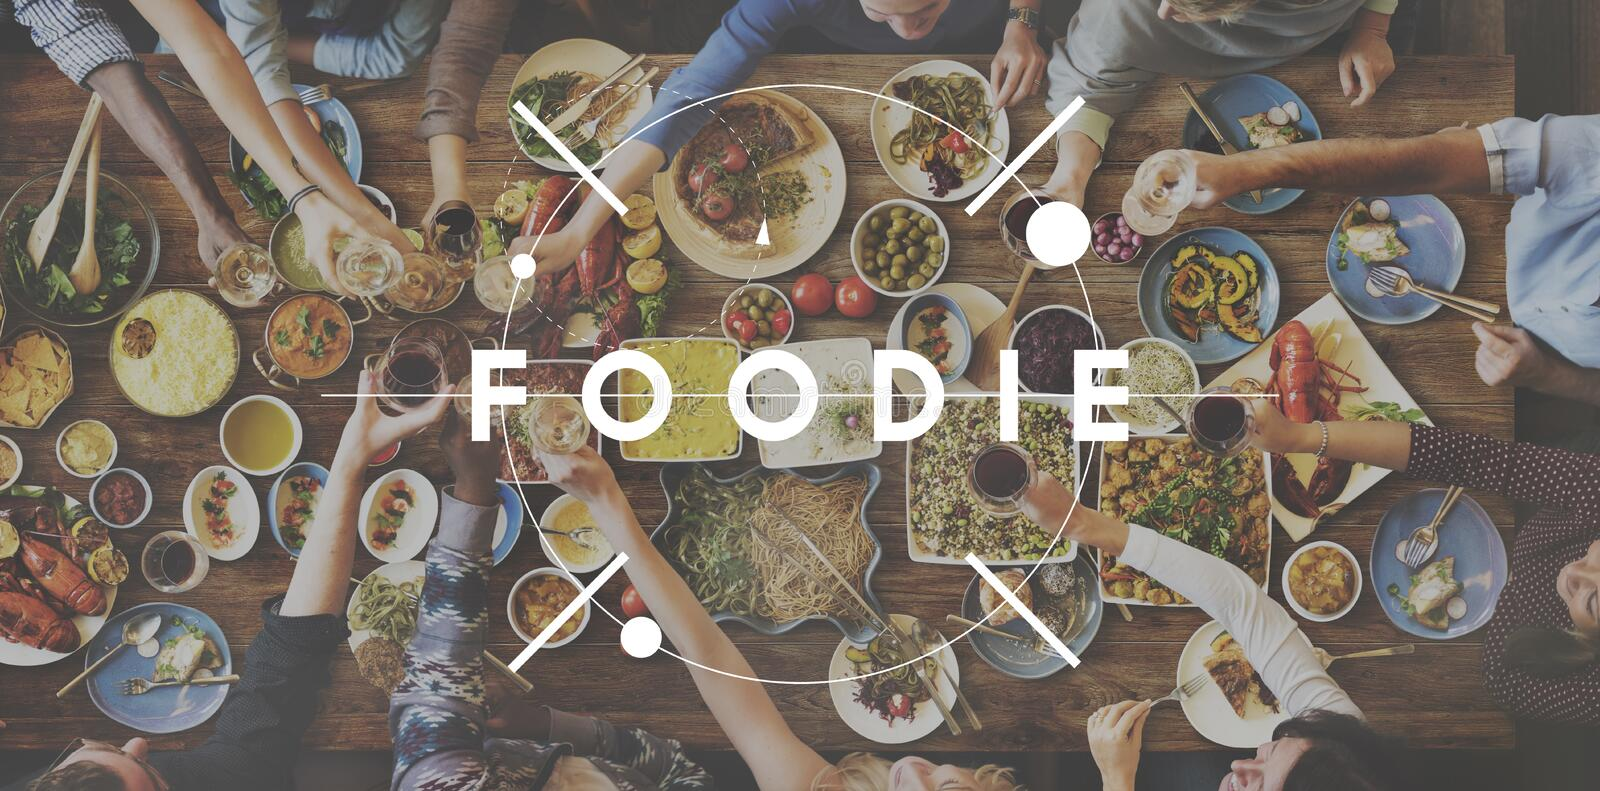 Foodie Food Eating Party Celebration Concept royalty free stock photography